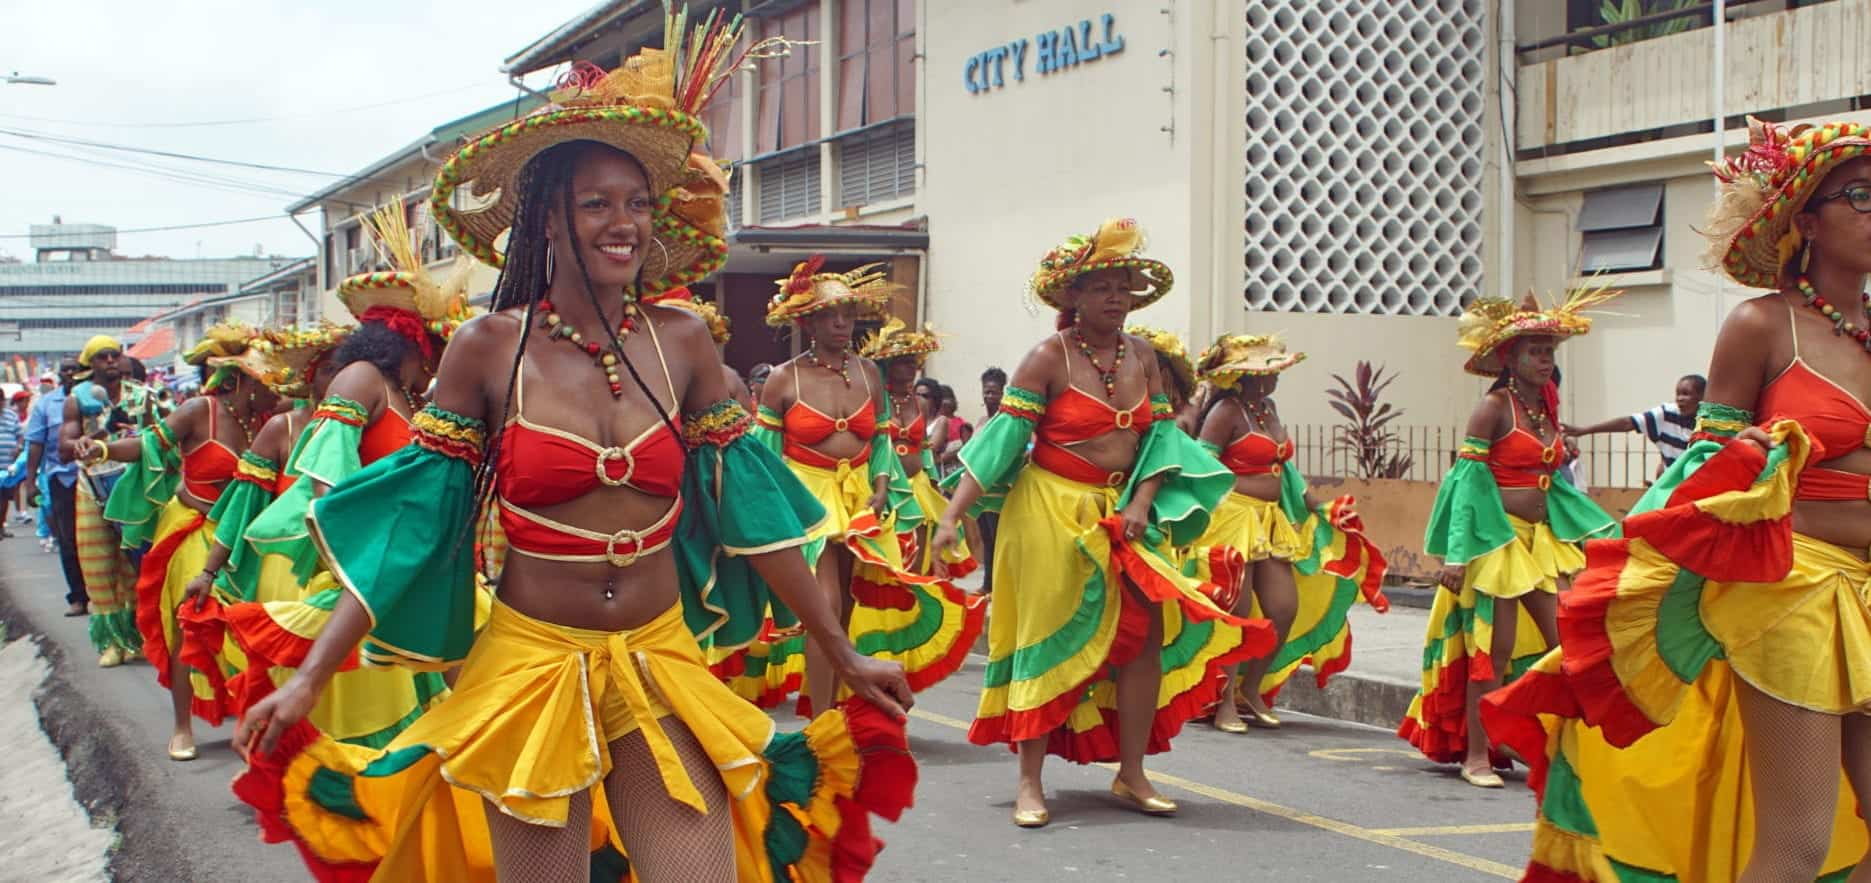 Saint Lucia 7nt Carnival Package From 163 1259pp In Special Offers Holiday Special Offers With Sn